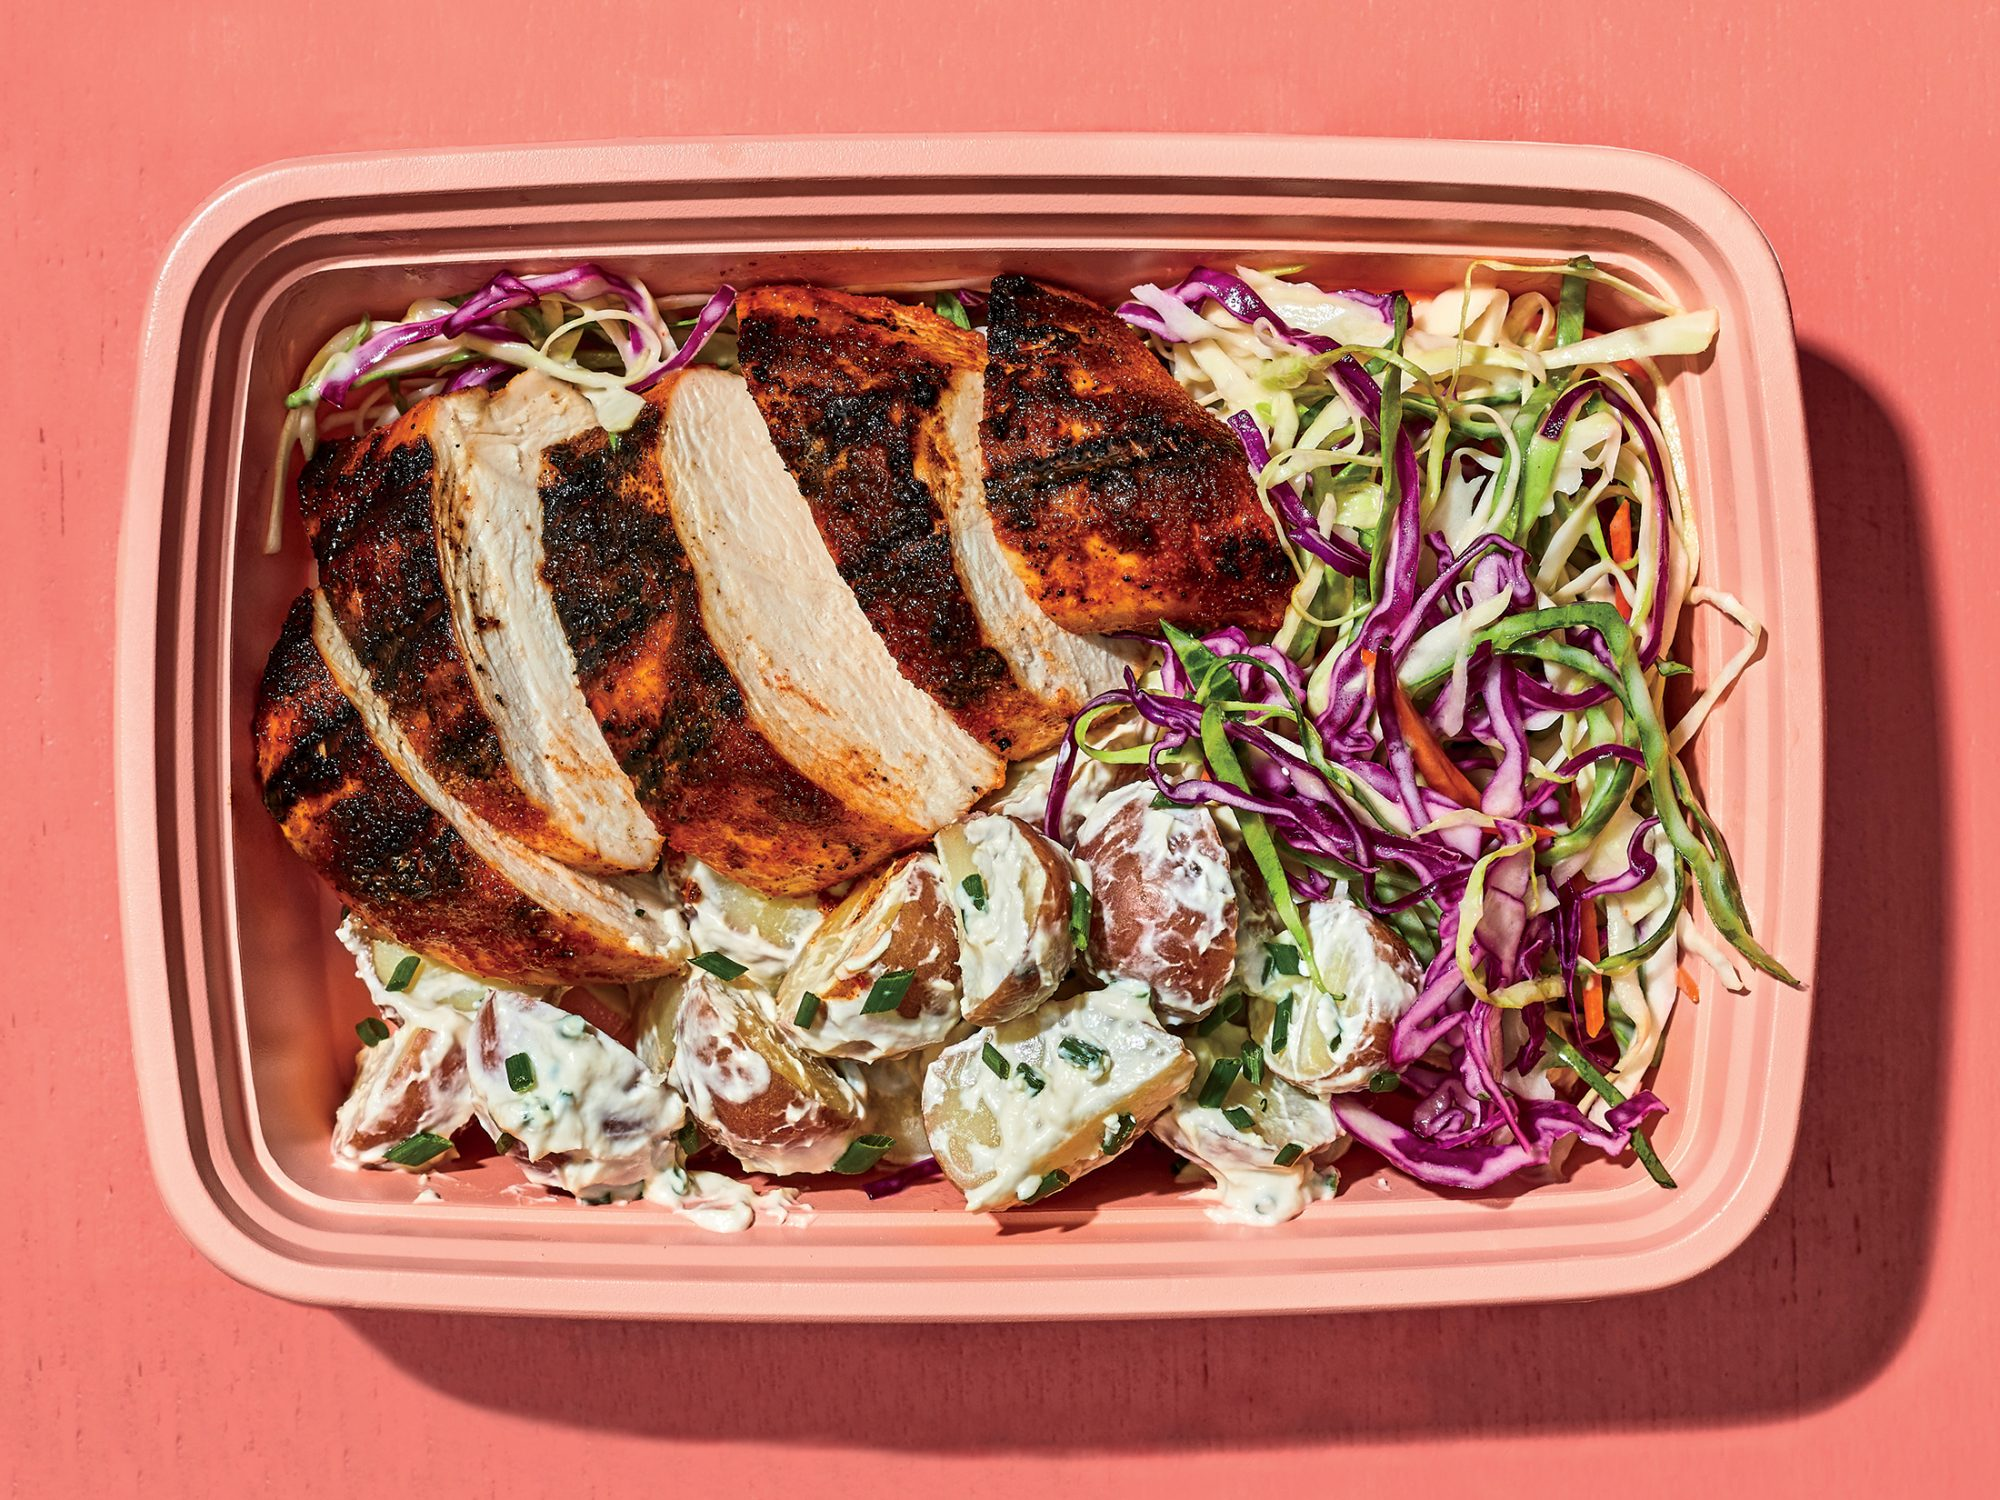 Smoky Chicken With Potato Salad and Slaw